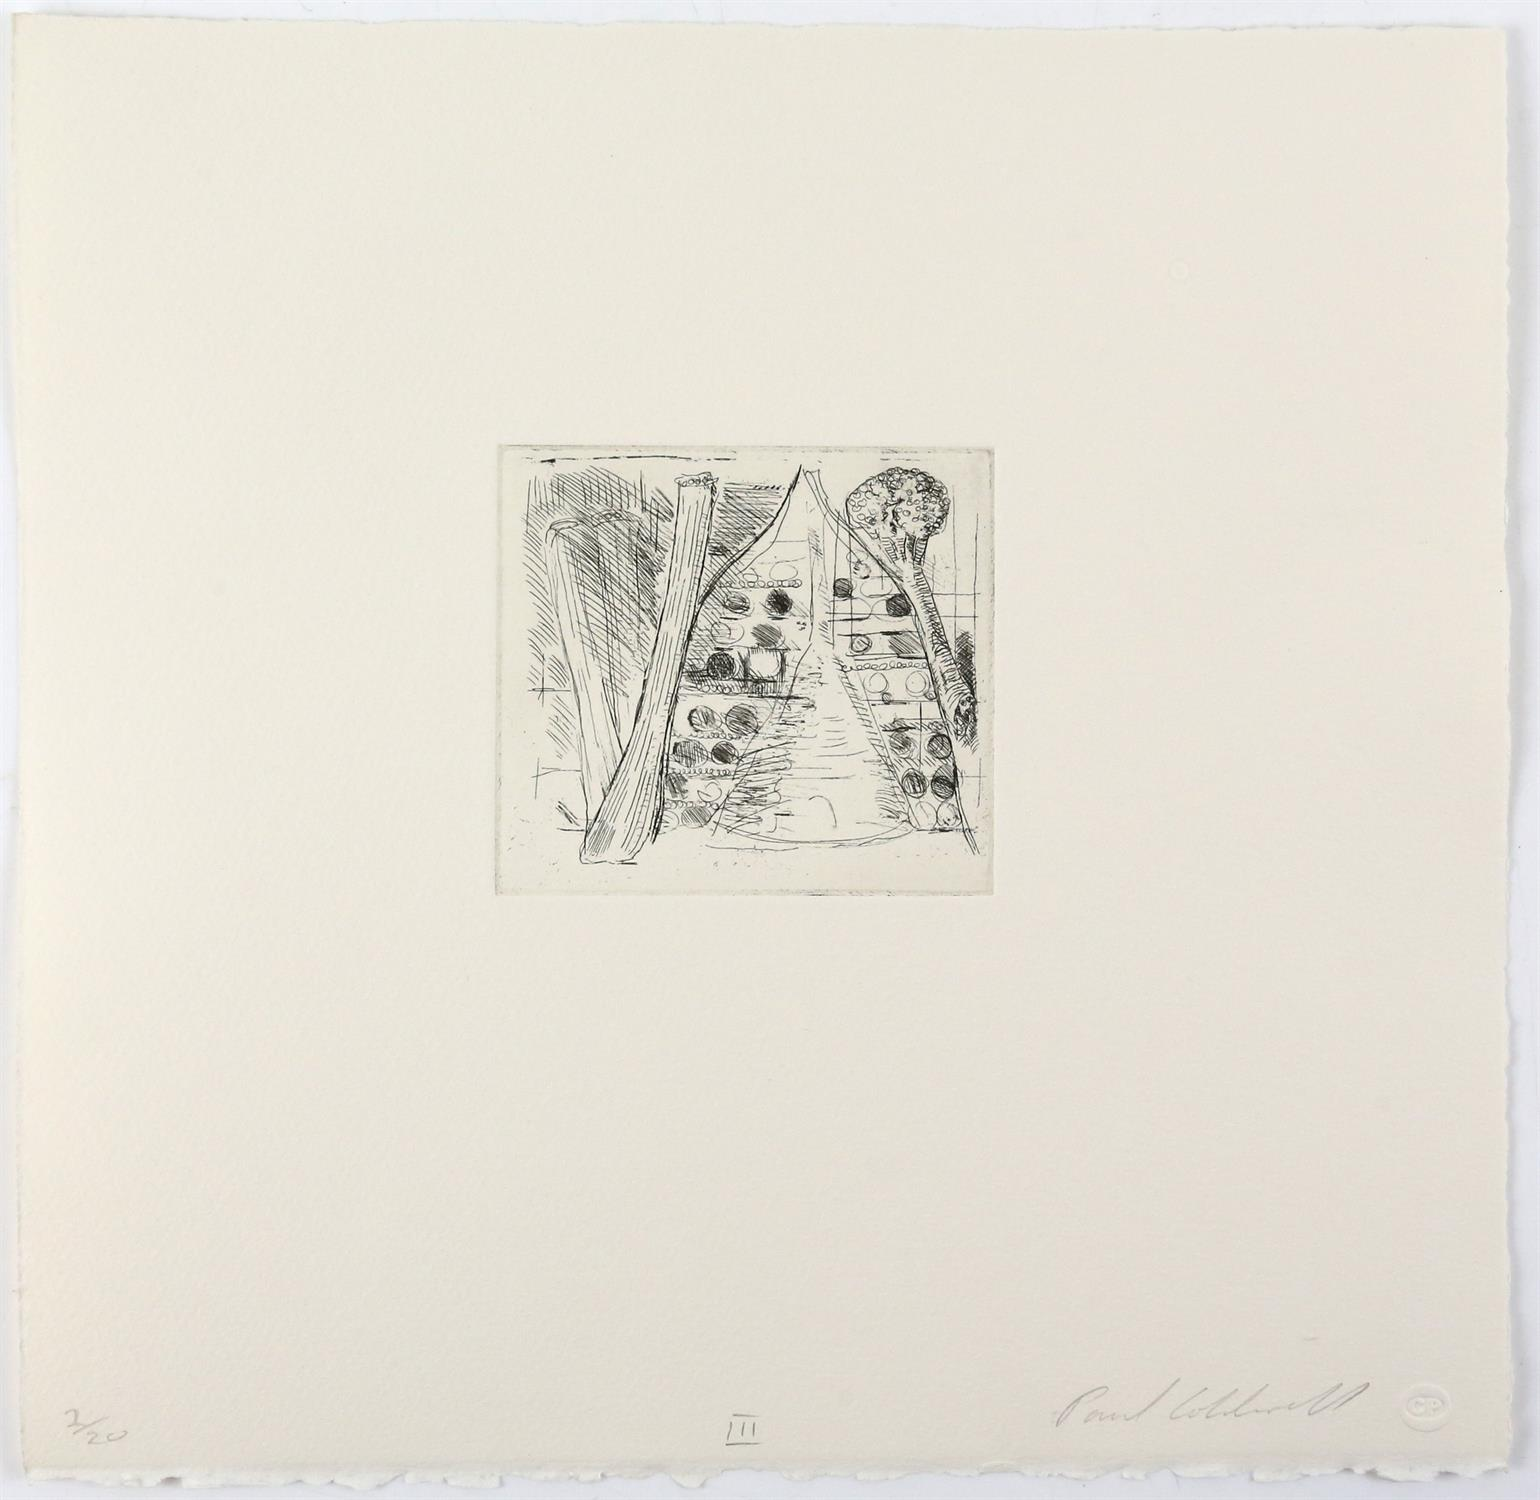 Paul Coldwell (British, b.1952). Three etchings from the 'The Studio' folio, 1988, each signed, - Image 4 of 11